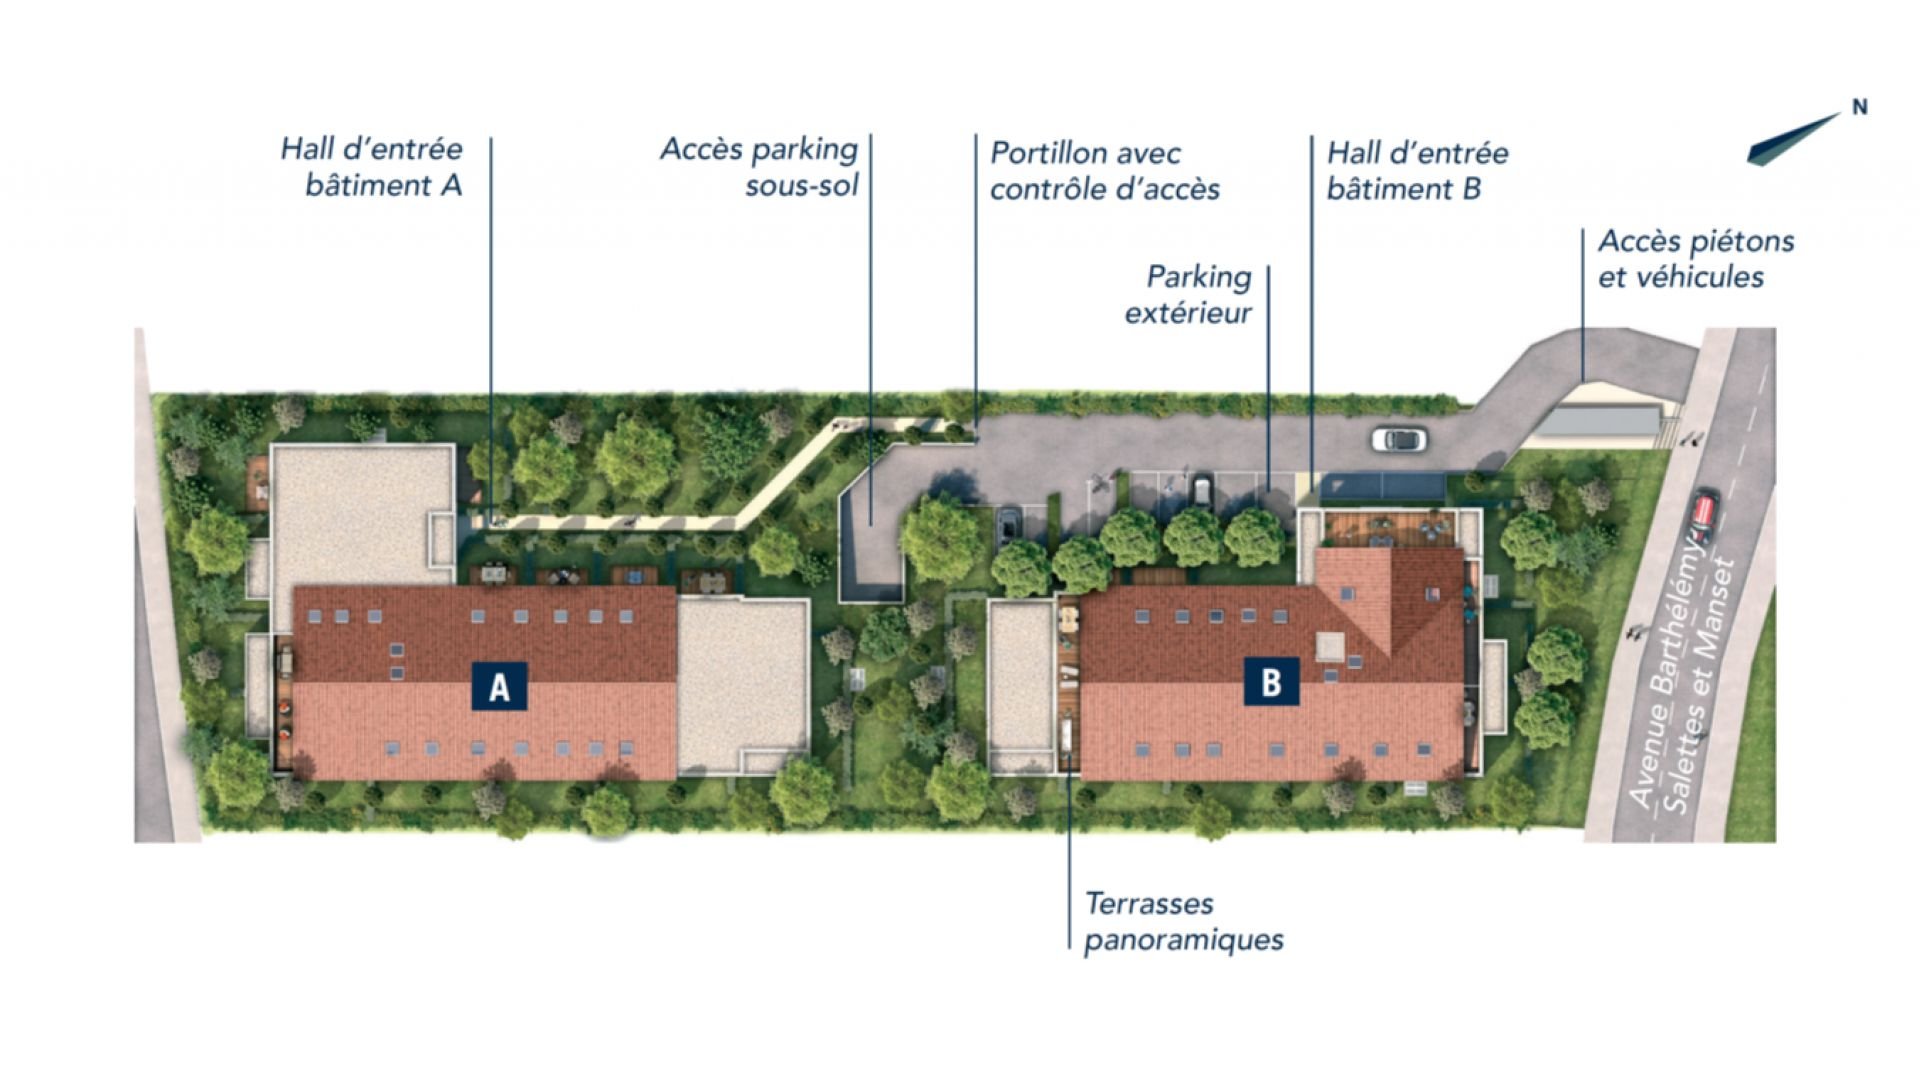 Greencity Immobilier - Patio 47 - 31320 Castanet-Tolosan - achat appartements du T2 au T4 - plan de masse